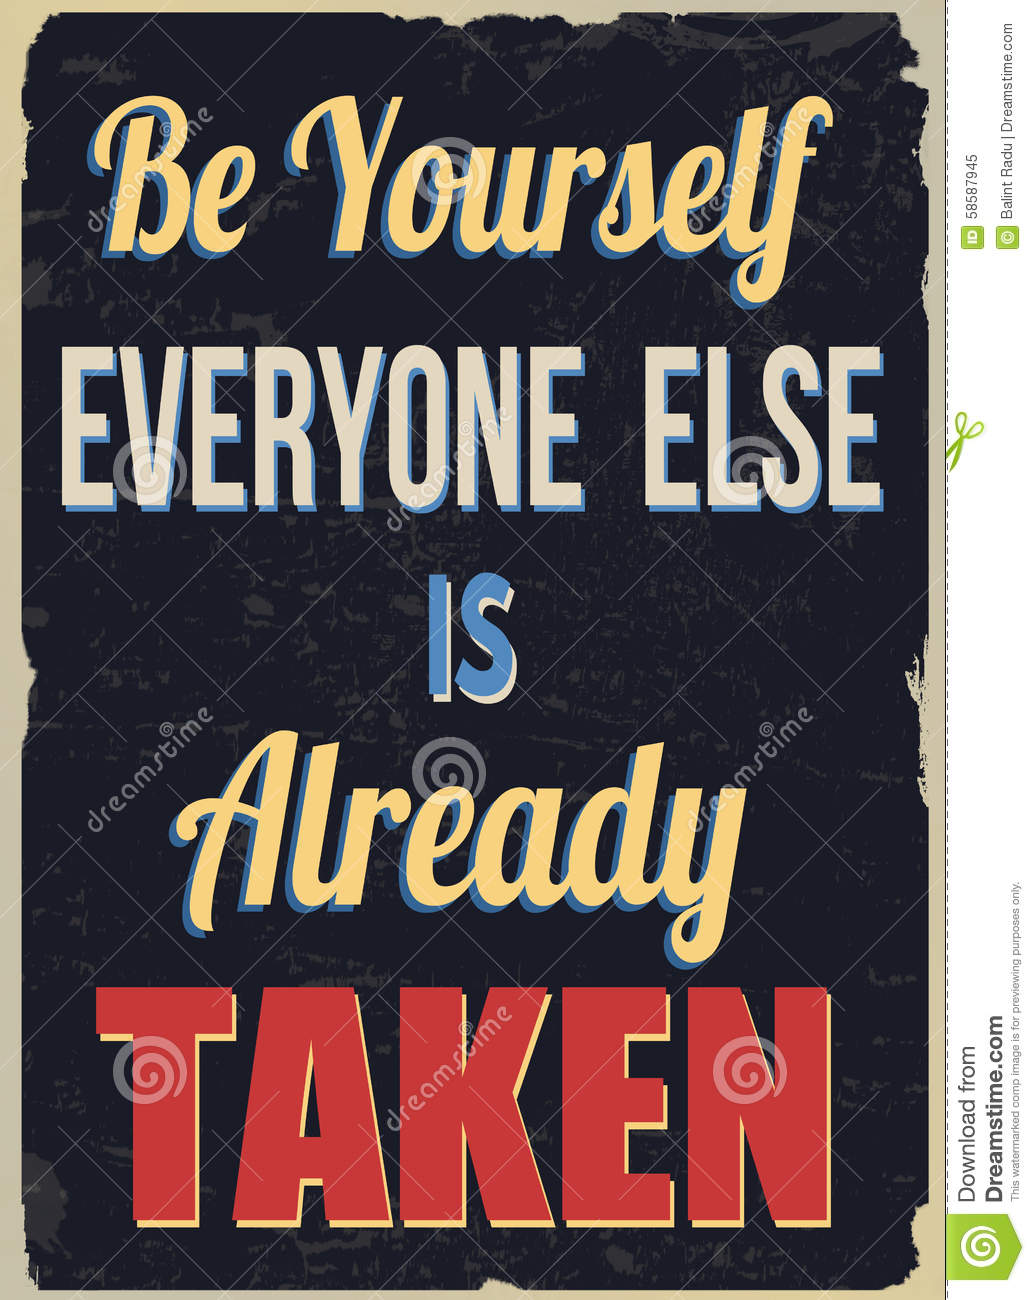 Be Yourself Everyone Else Is Already Taken Poster Stock Vector ...